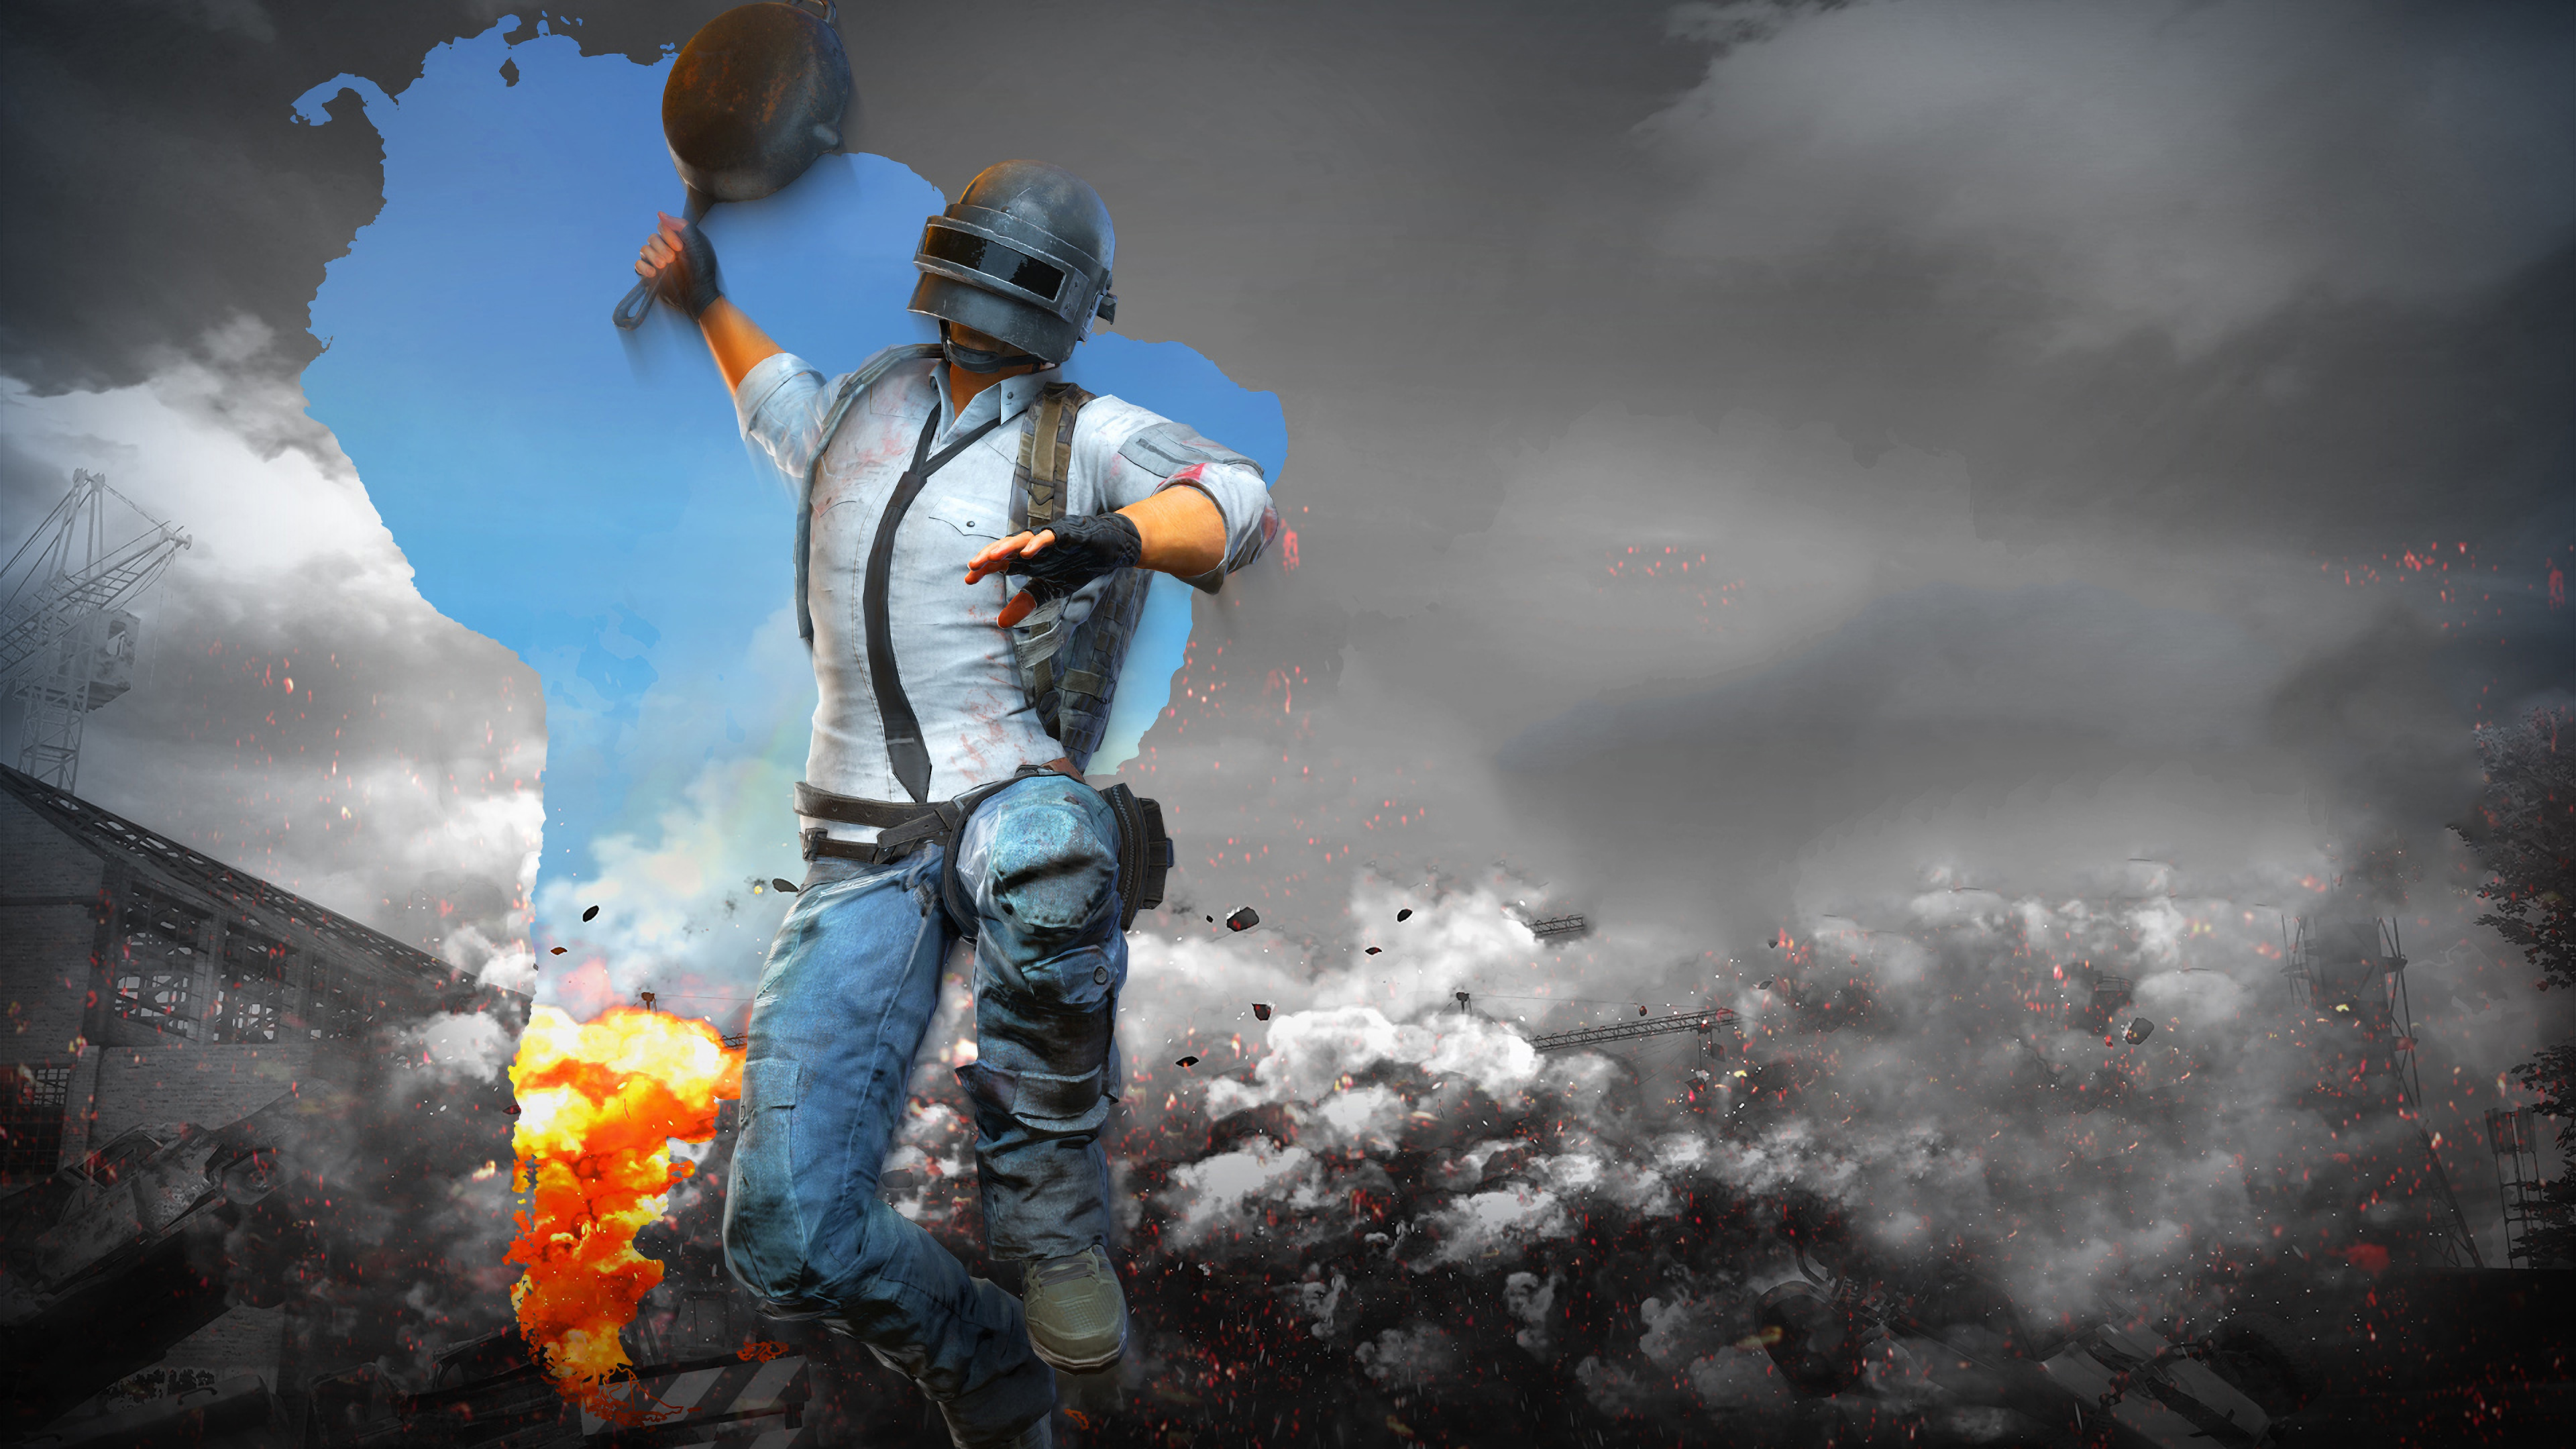 Pubg Wallpaper Hd Pic: PUBG Wallpaper 4K/HD Of 2019 Download